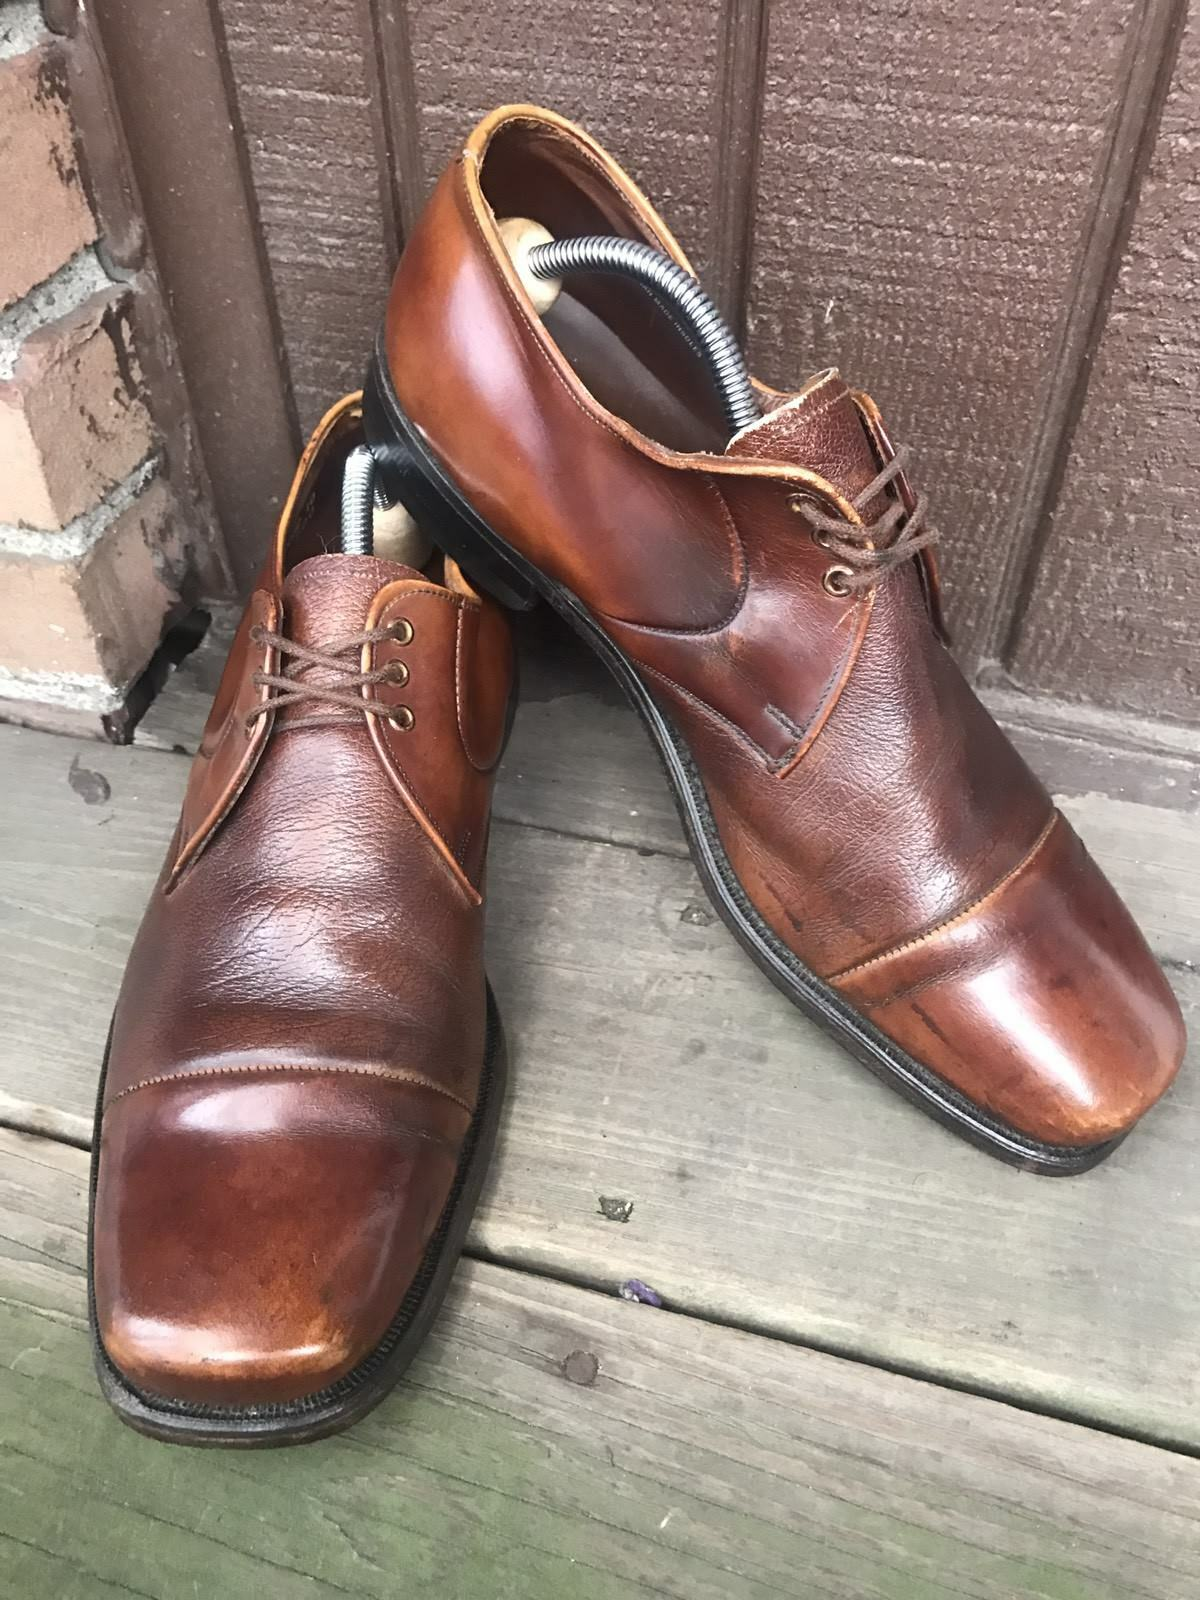 Mens Weyenberg Size 11 C Brown Leather Cap Toe Oxfords Derby Dress Casual-239